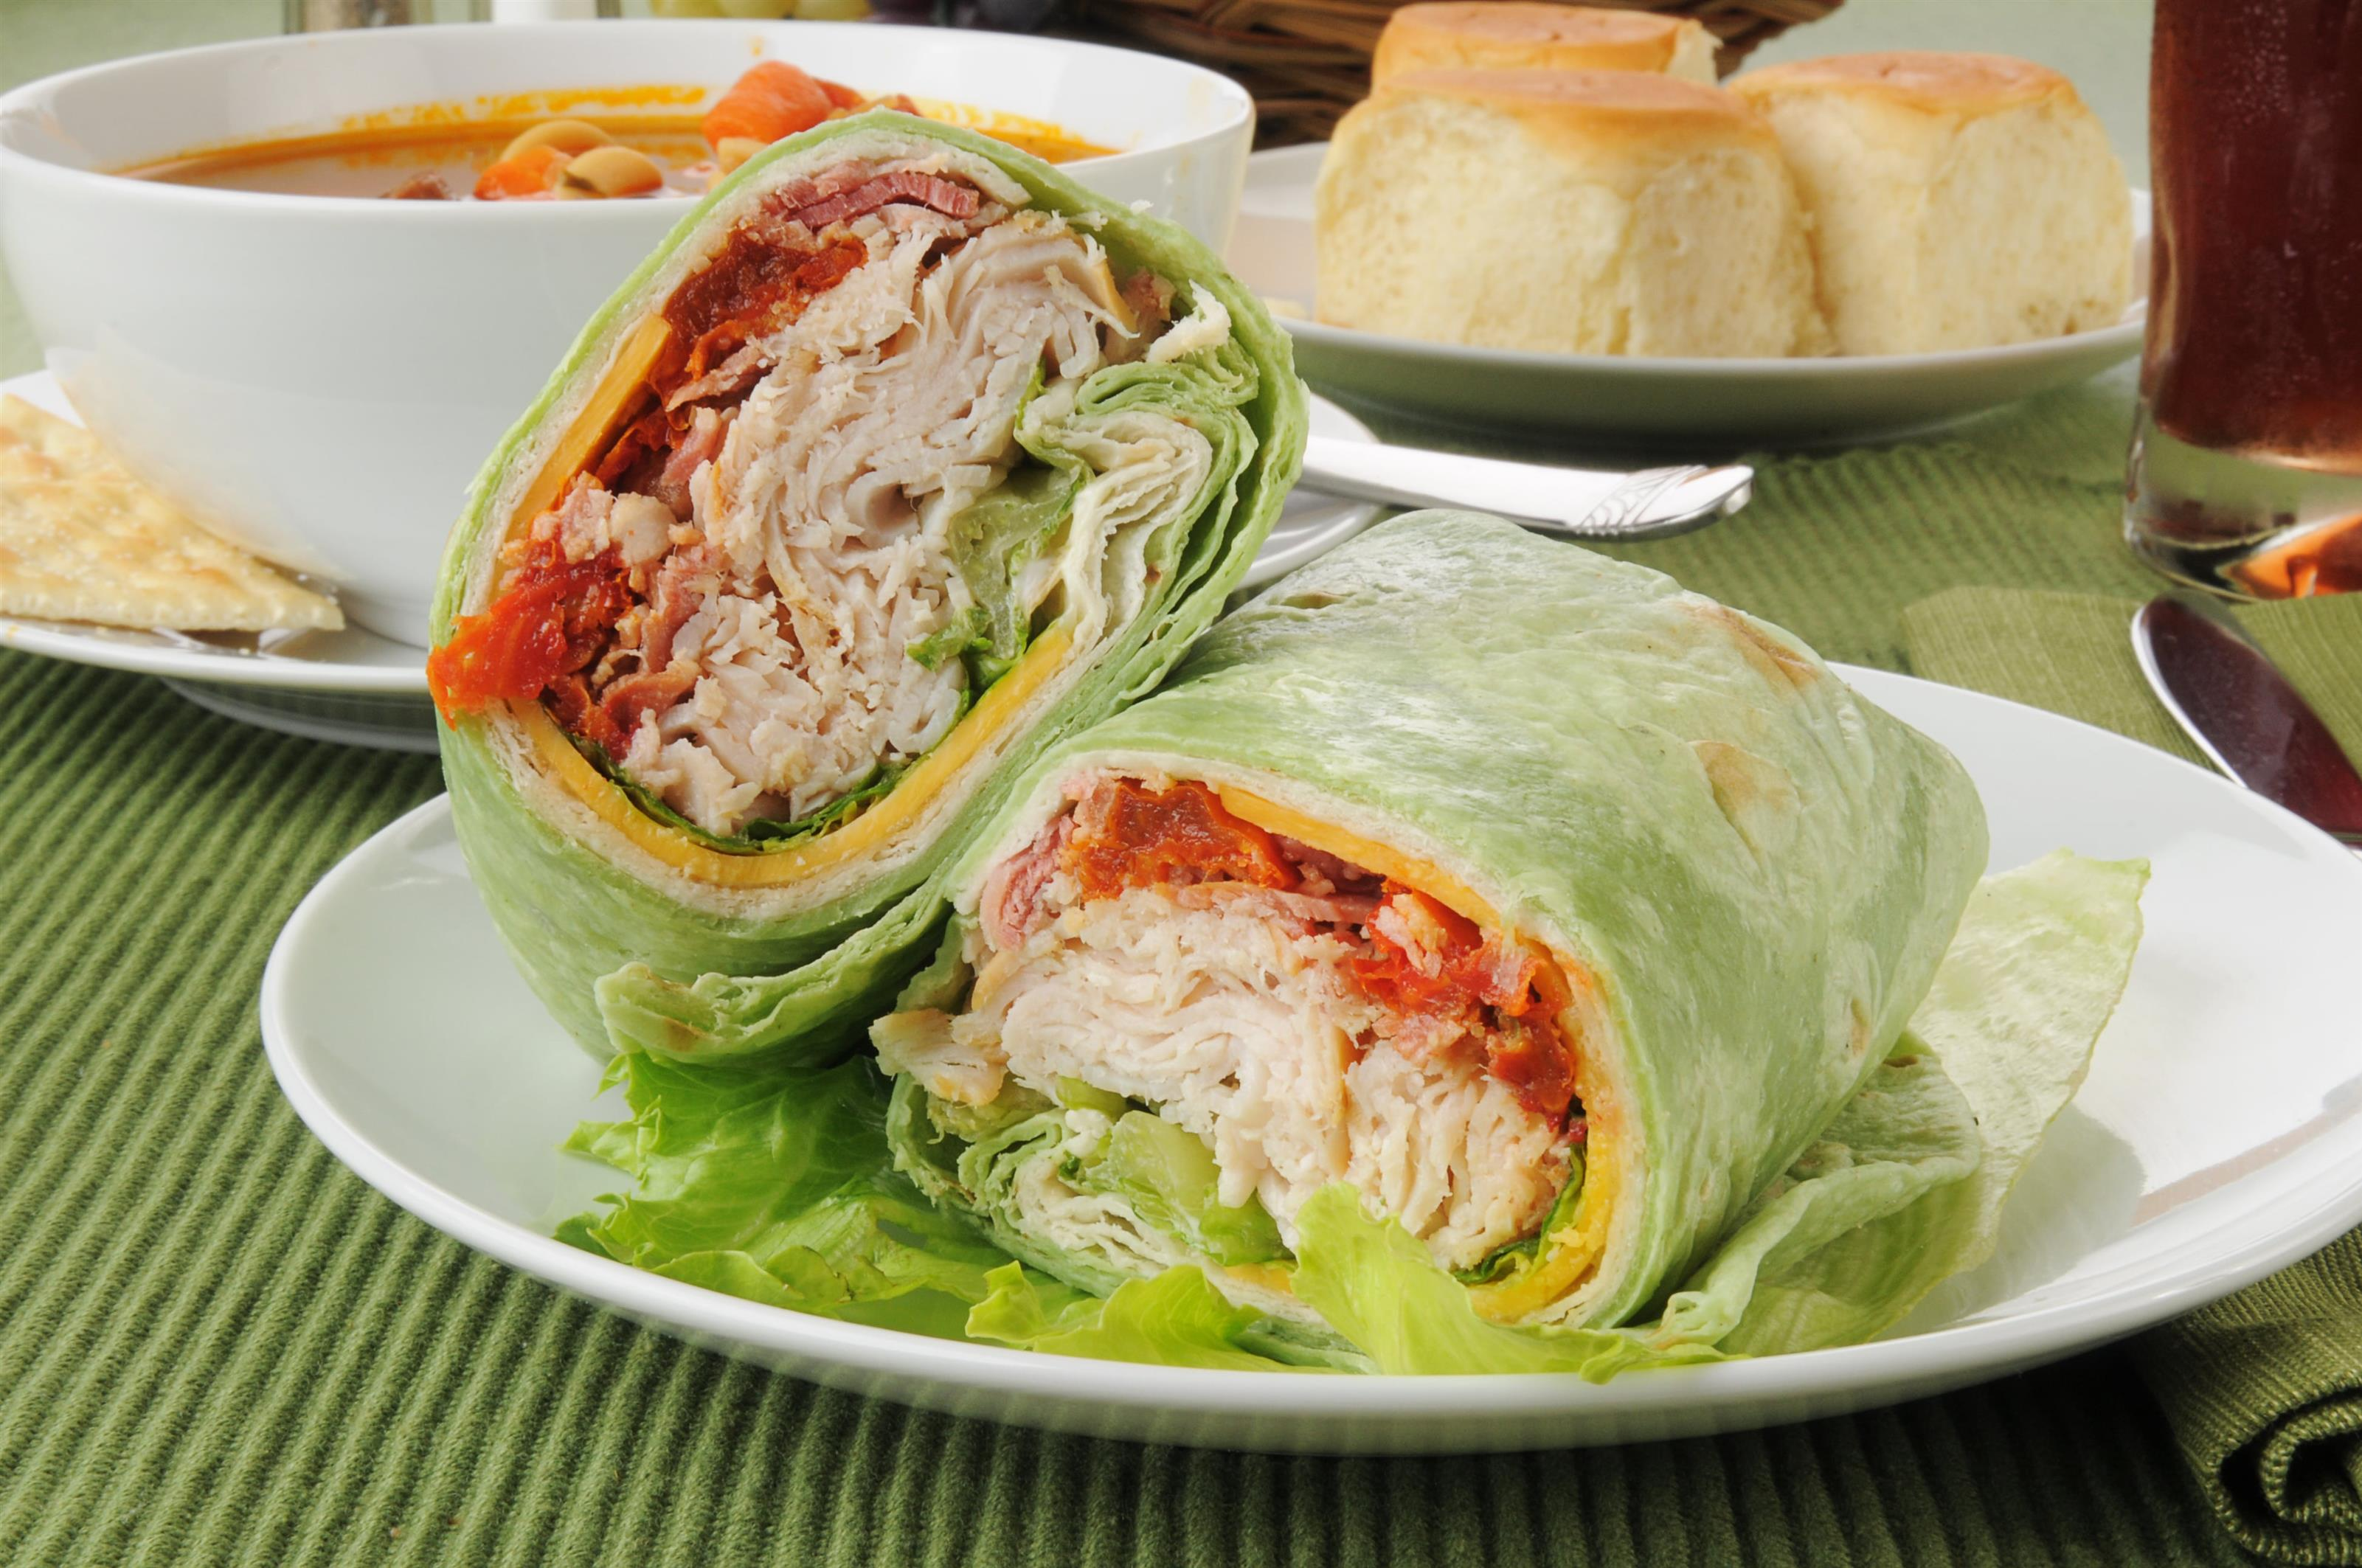 Lettuce wrap with turkey, cheese, sun dried tomato.